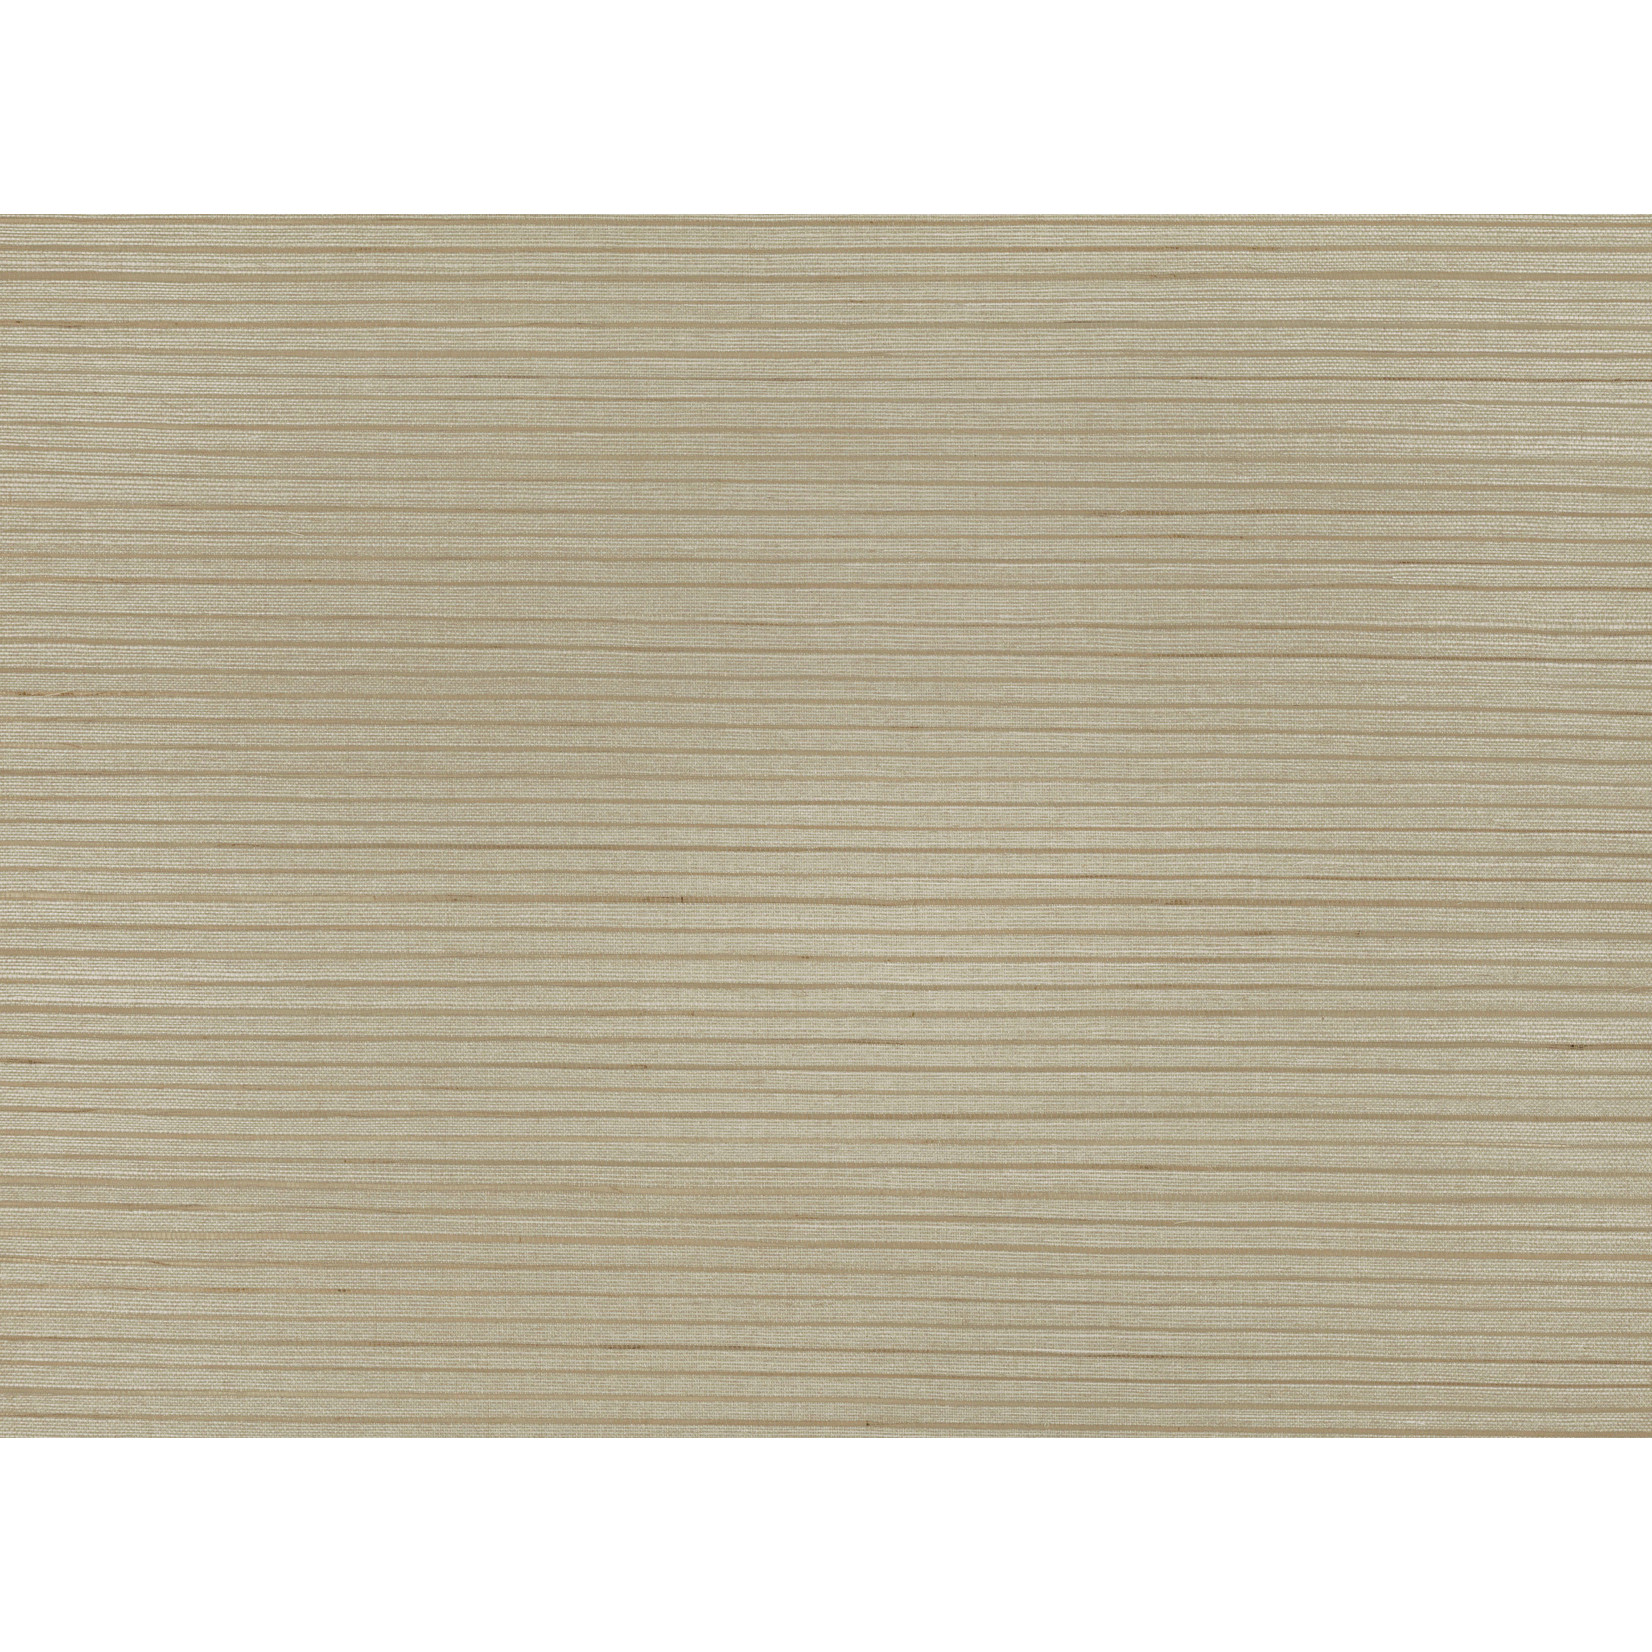 Mark Alexander Grasscloth Handwoven Wallcoverings | Seagrass Parchment